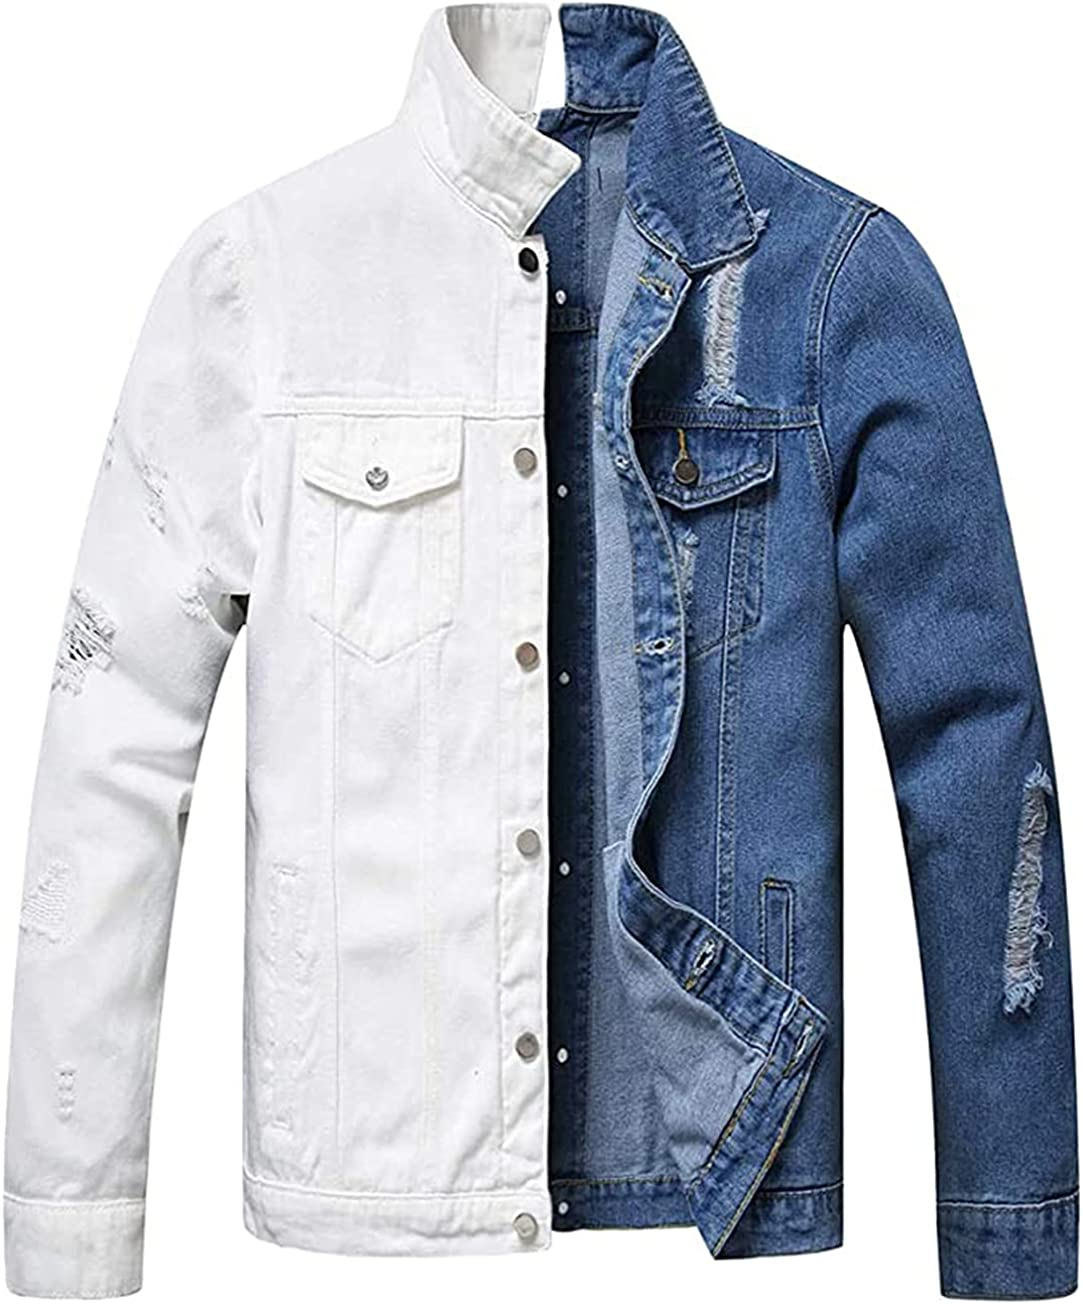 Jean Jacket for Men Lightweight Separable Left&Right Button Front Back Ripped Denim Jackets Soft Cotton Slim Fit Cool Stylish